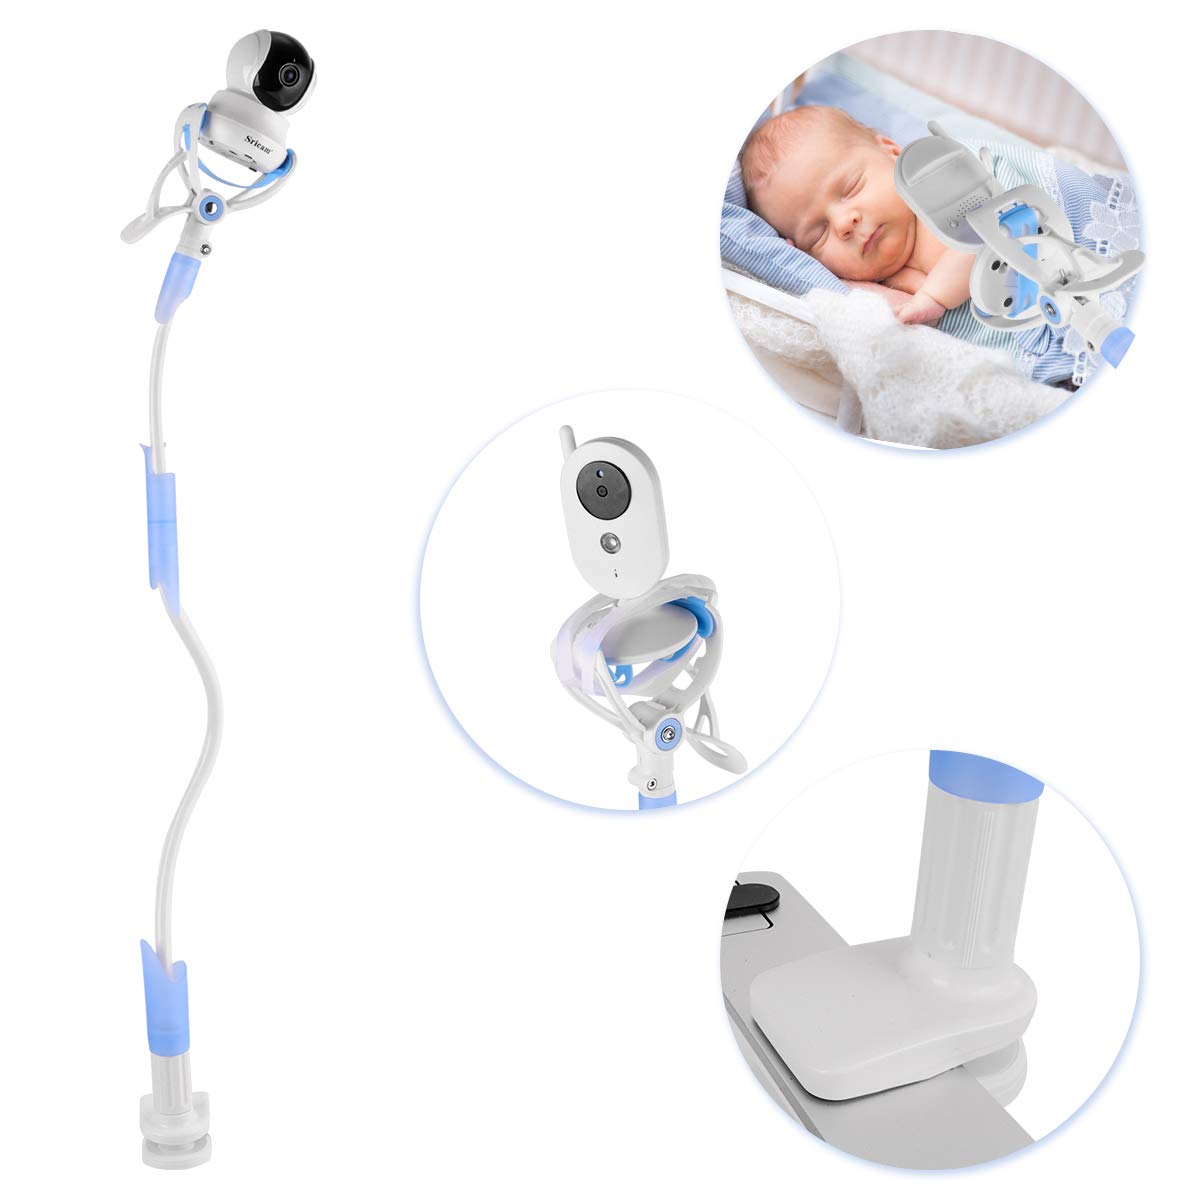 Universal Baby Monitor Mount, Xcsource Baby Camera Holder, Infant Video Monitor Holder and Flexible Camera Stand for Most Baby Monitors Sunix